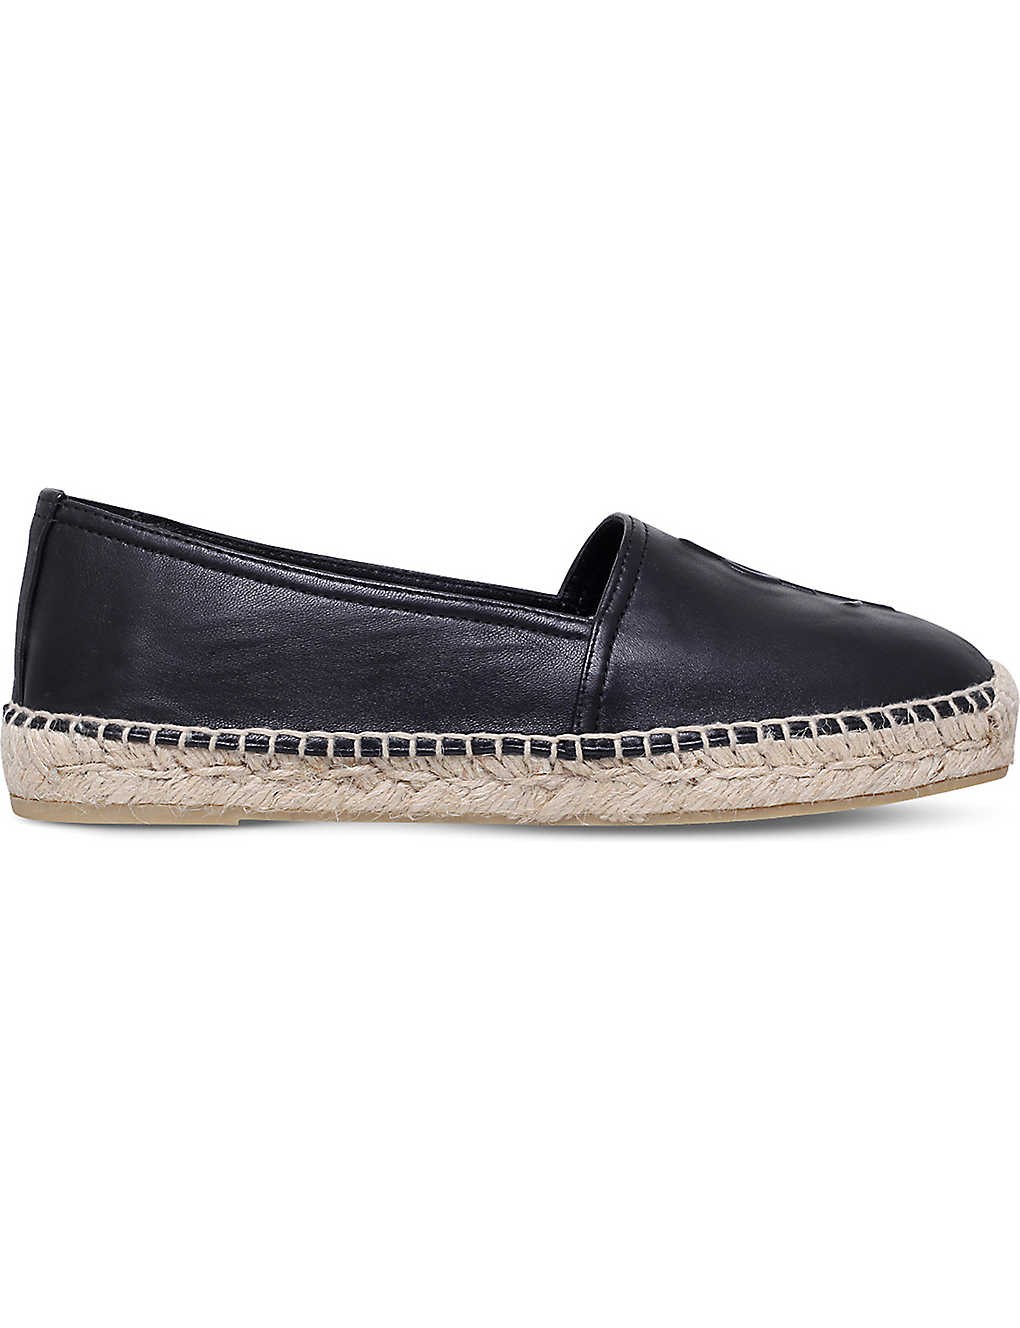 SAINT LAURENT: Leather espadrilles